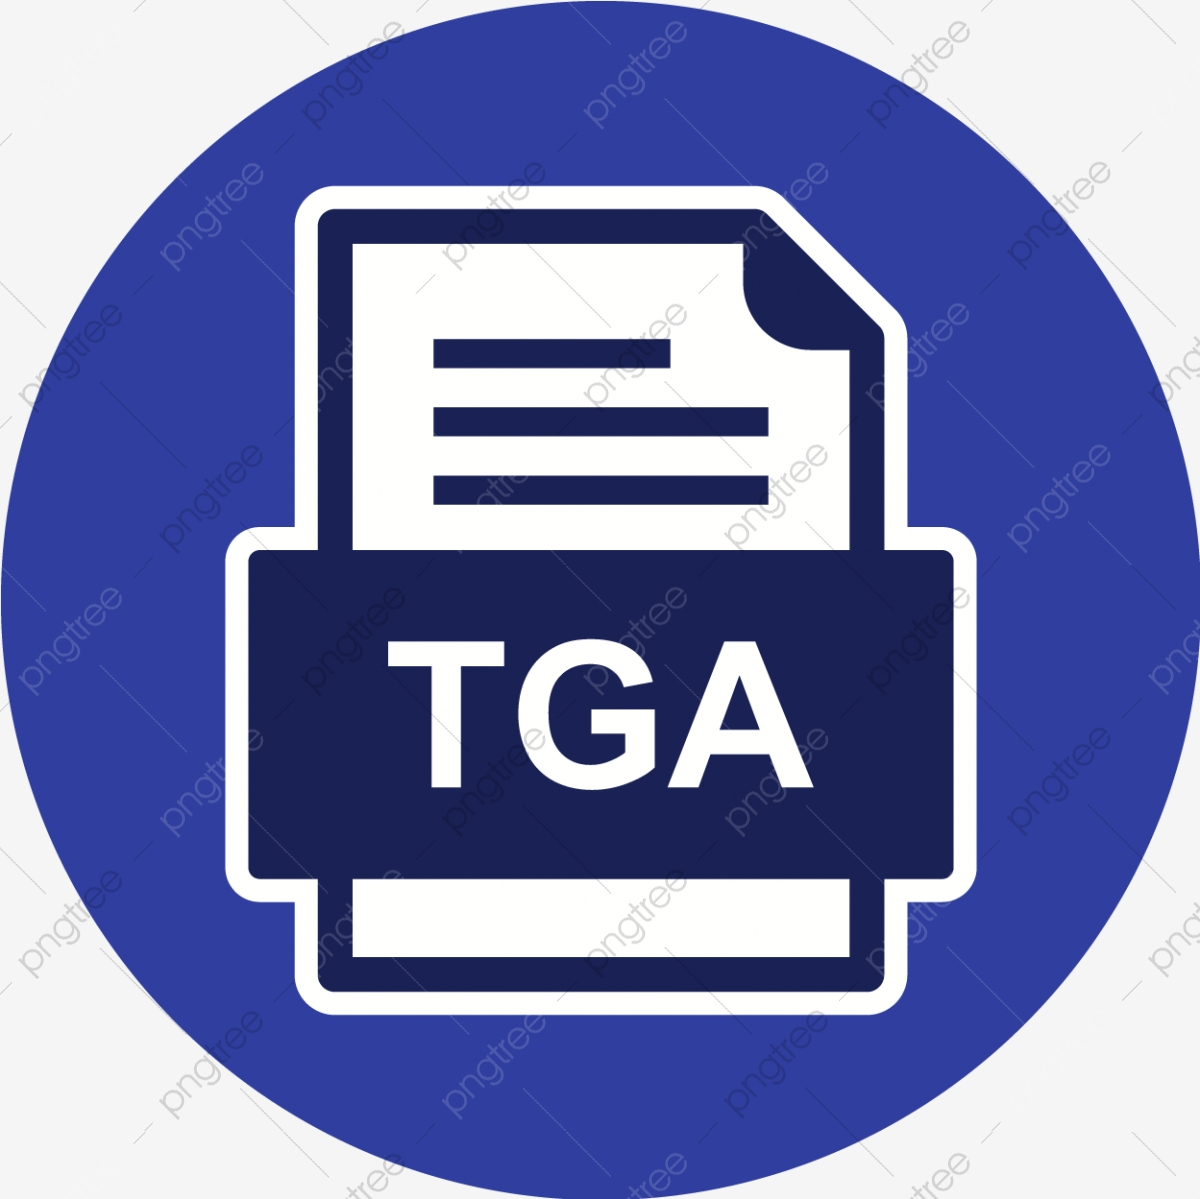 Tga vs clipart clipart images gallery for free download.